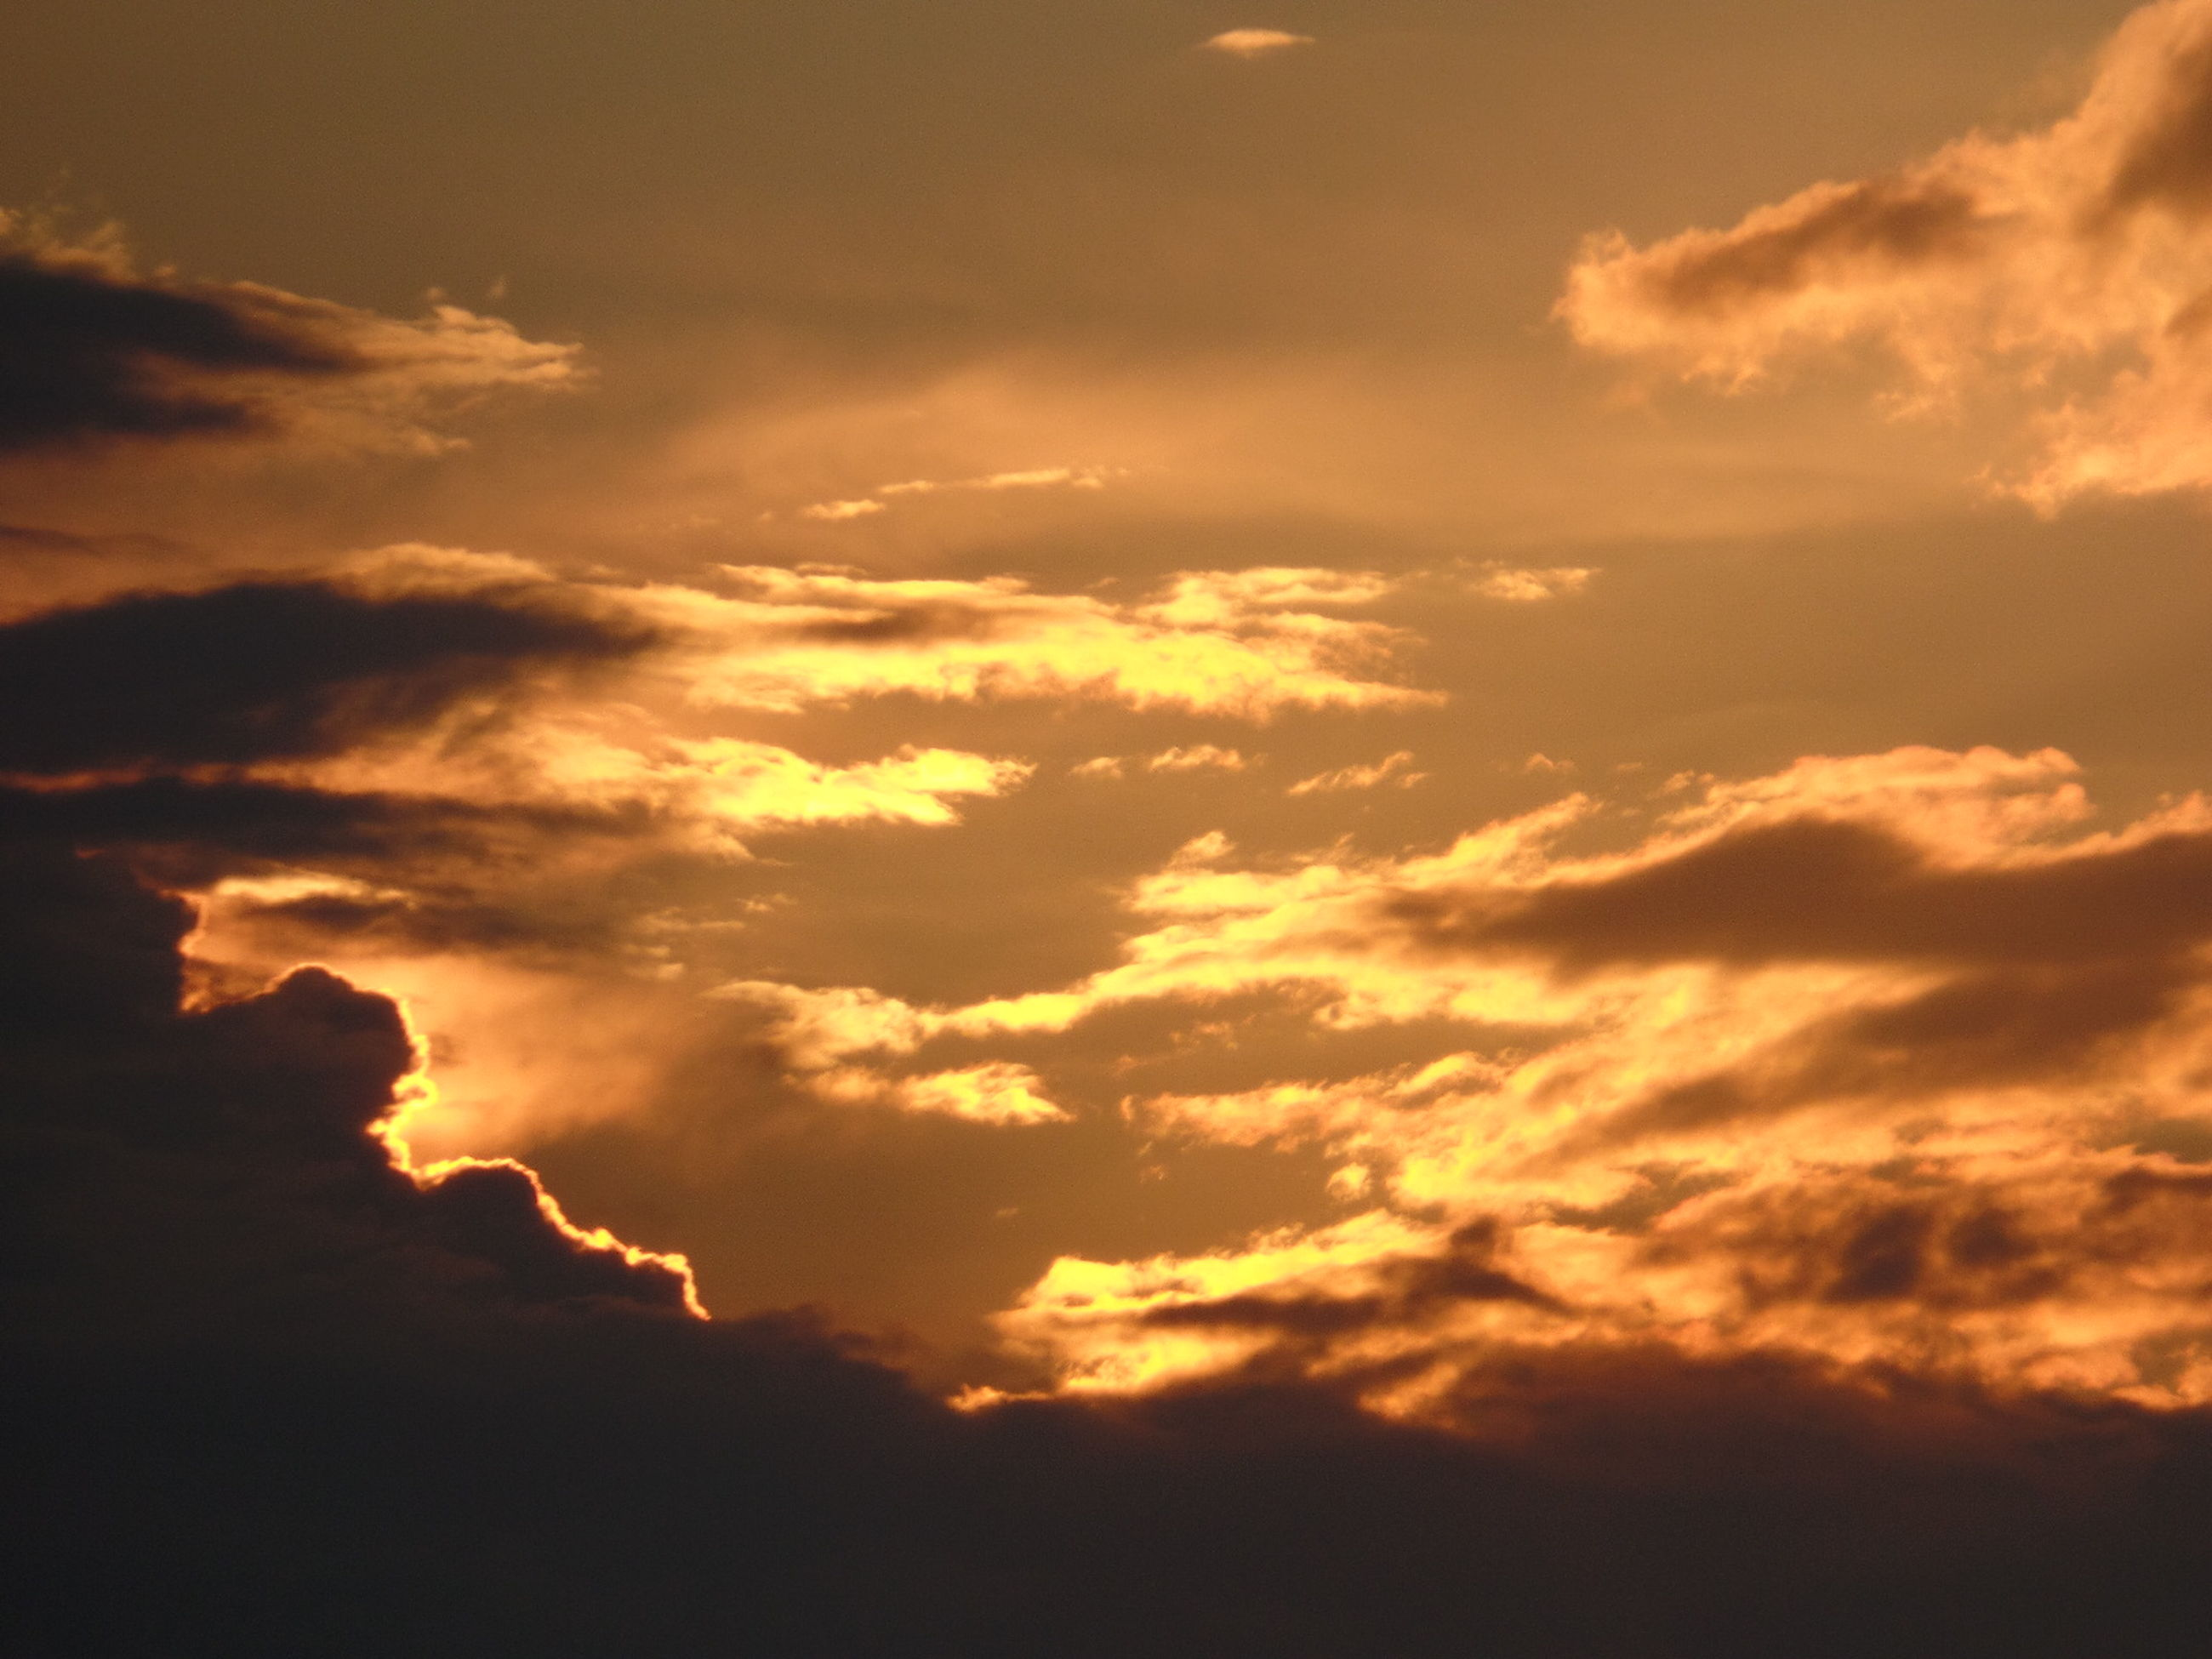 sunset, sky, beauty in nature, scenics, tranquility, tranquil scene, cloud - sky, low angle view, nature, orange color, idyllic, silhouette, cloudy, cloudscape, majestic, sky only, sun, cloud, dramatic sky, outdoors